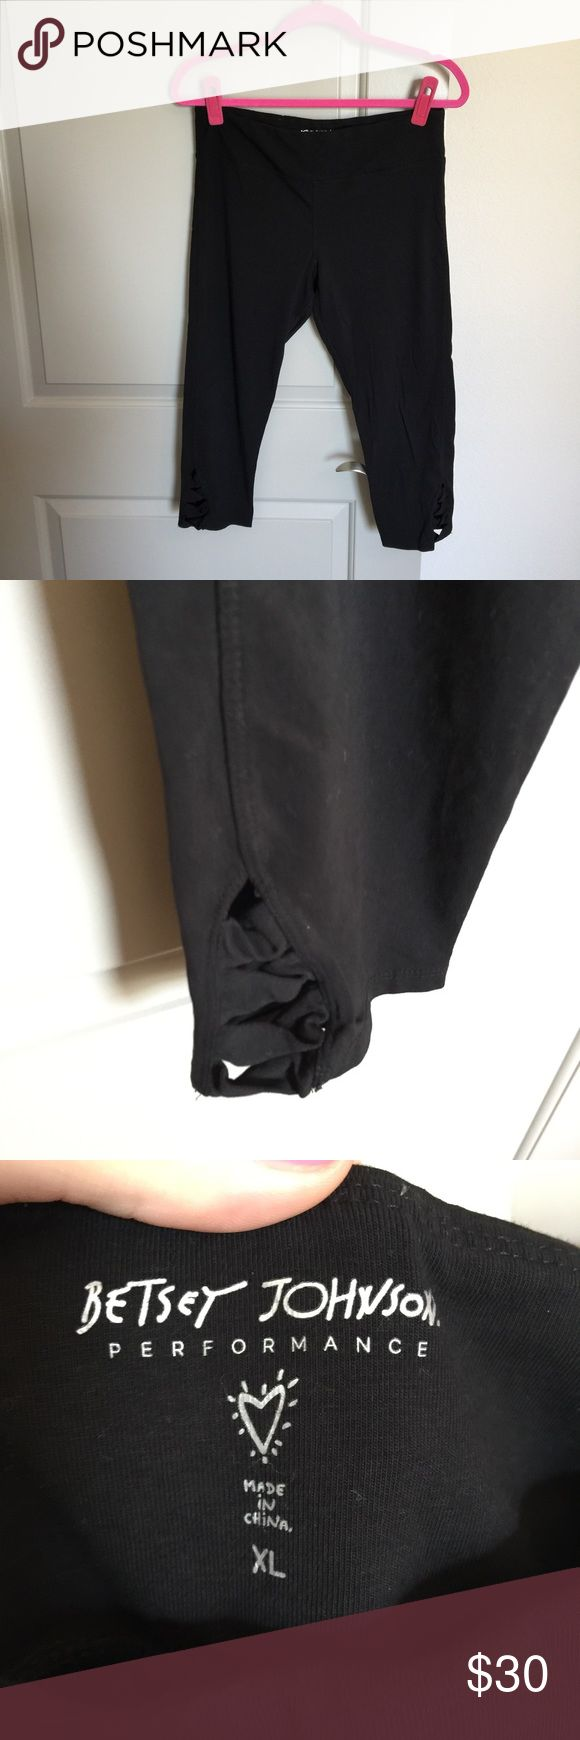 Black Workout Capris Great condition black Workout Capris. Purchased from Saks Fifth Avenue! Adorable detail on the side of the leg at the bottom! Betsey Johnson Pants Capris